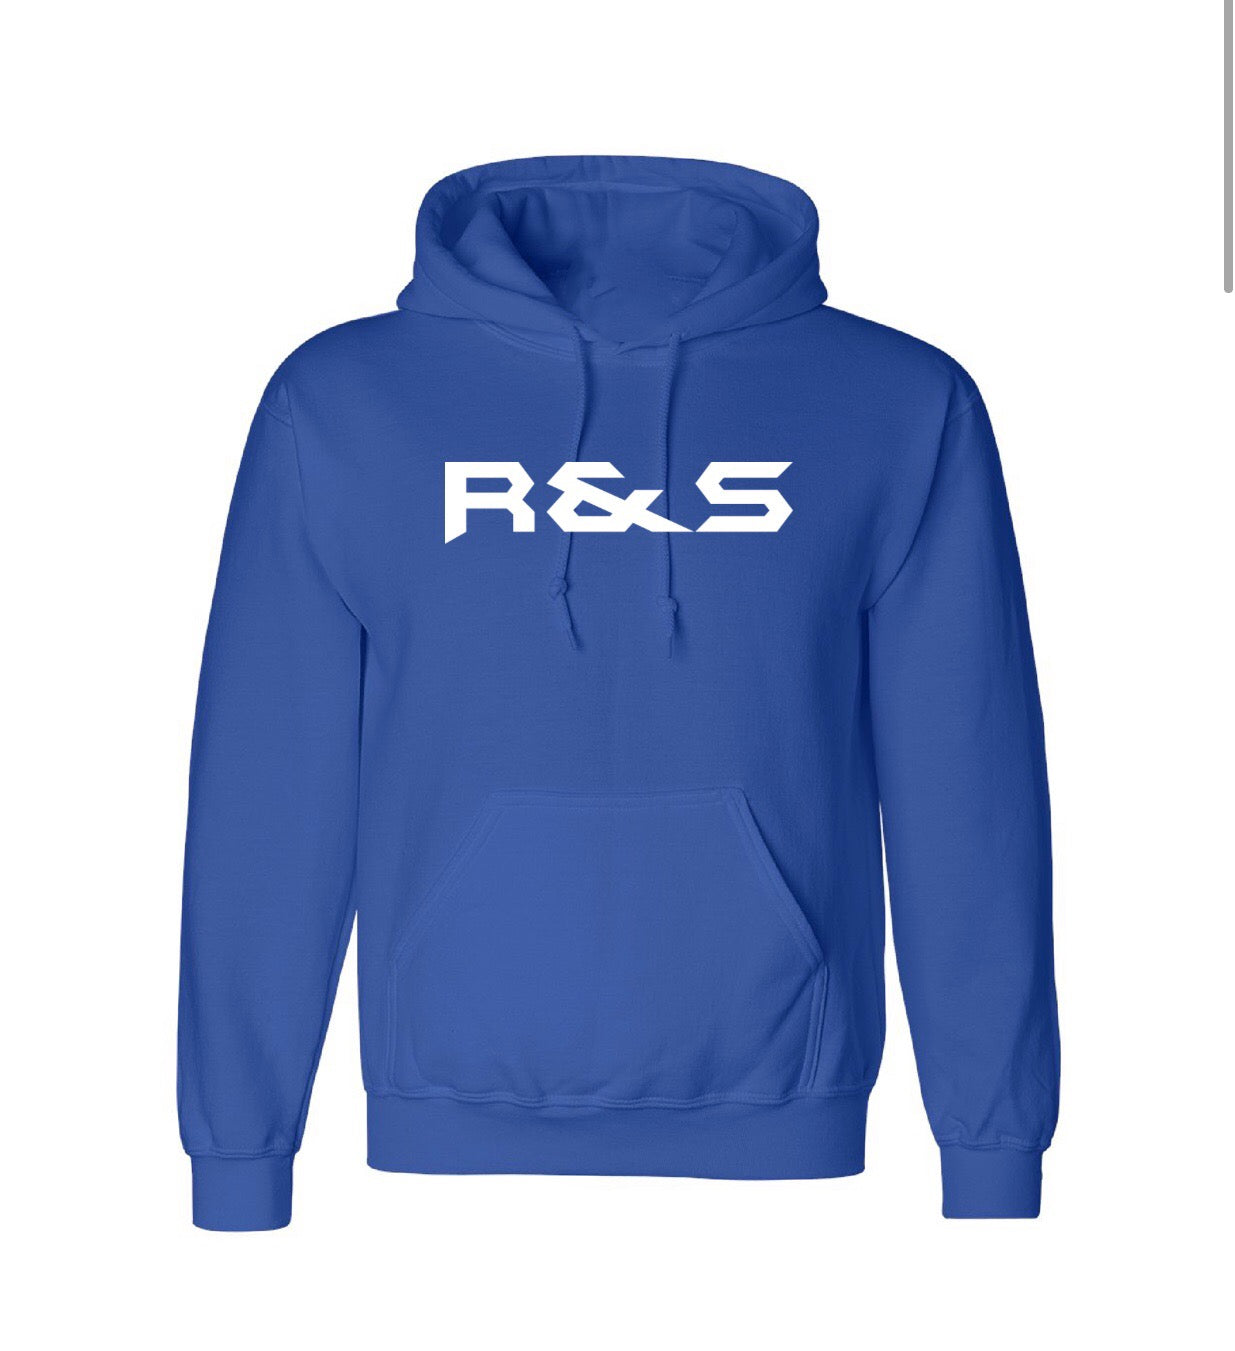 R&S HOODED SWEATSHIRT